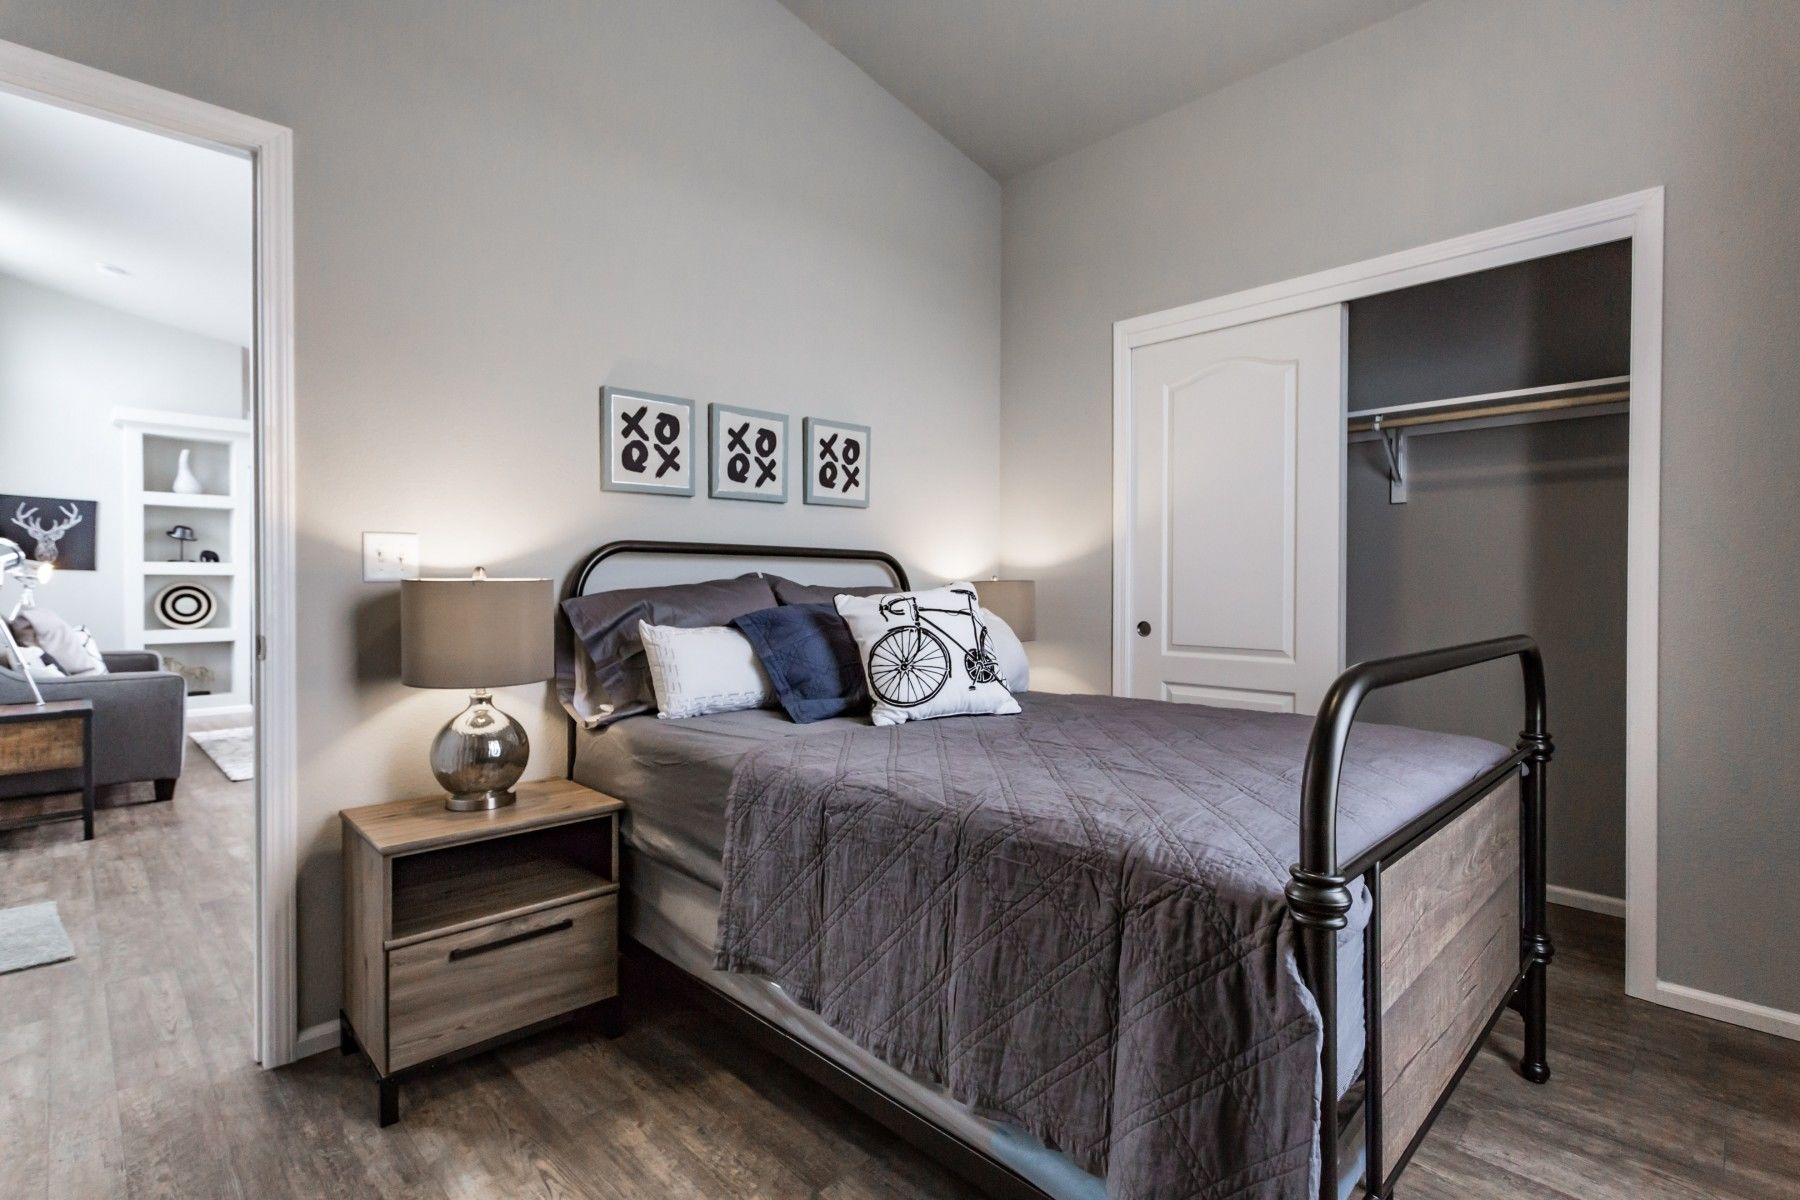 FLYER_REZ-9794 Open Floor Plan Modular Homes With Loft on home designs with lofts, country home plans with lofts, cottage floor plans with lofts, modular homes interiors with lofts,